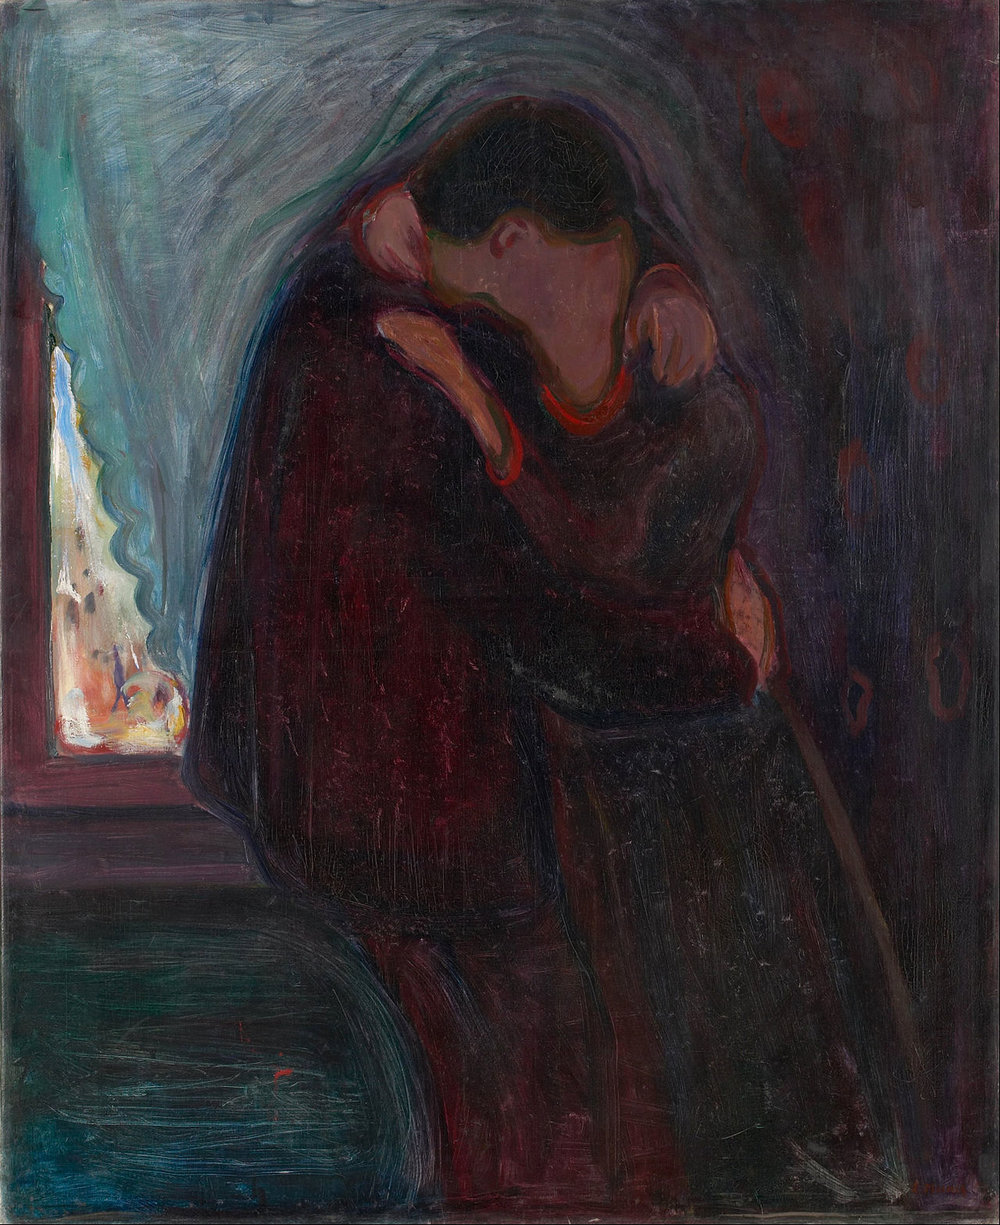 Edvard Munch,  The Kiss , 1897, oil on canvas, 99 × 81 cm, © Munch-museet/Munch -Ellingsen Gruppen/Bono